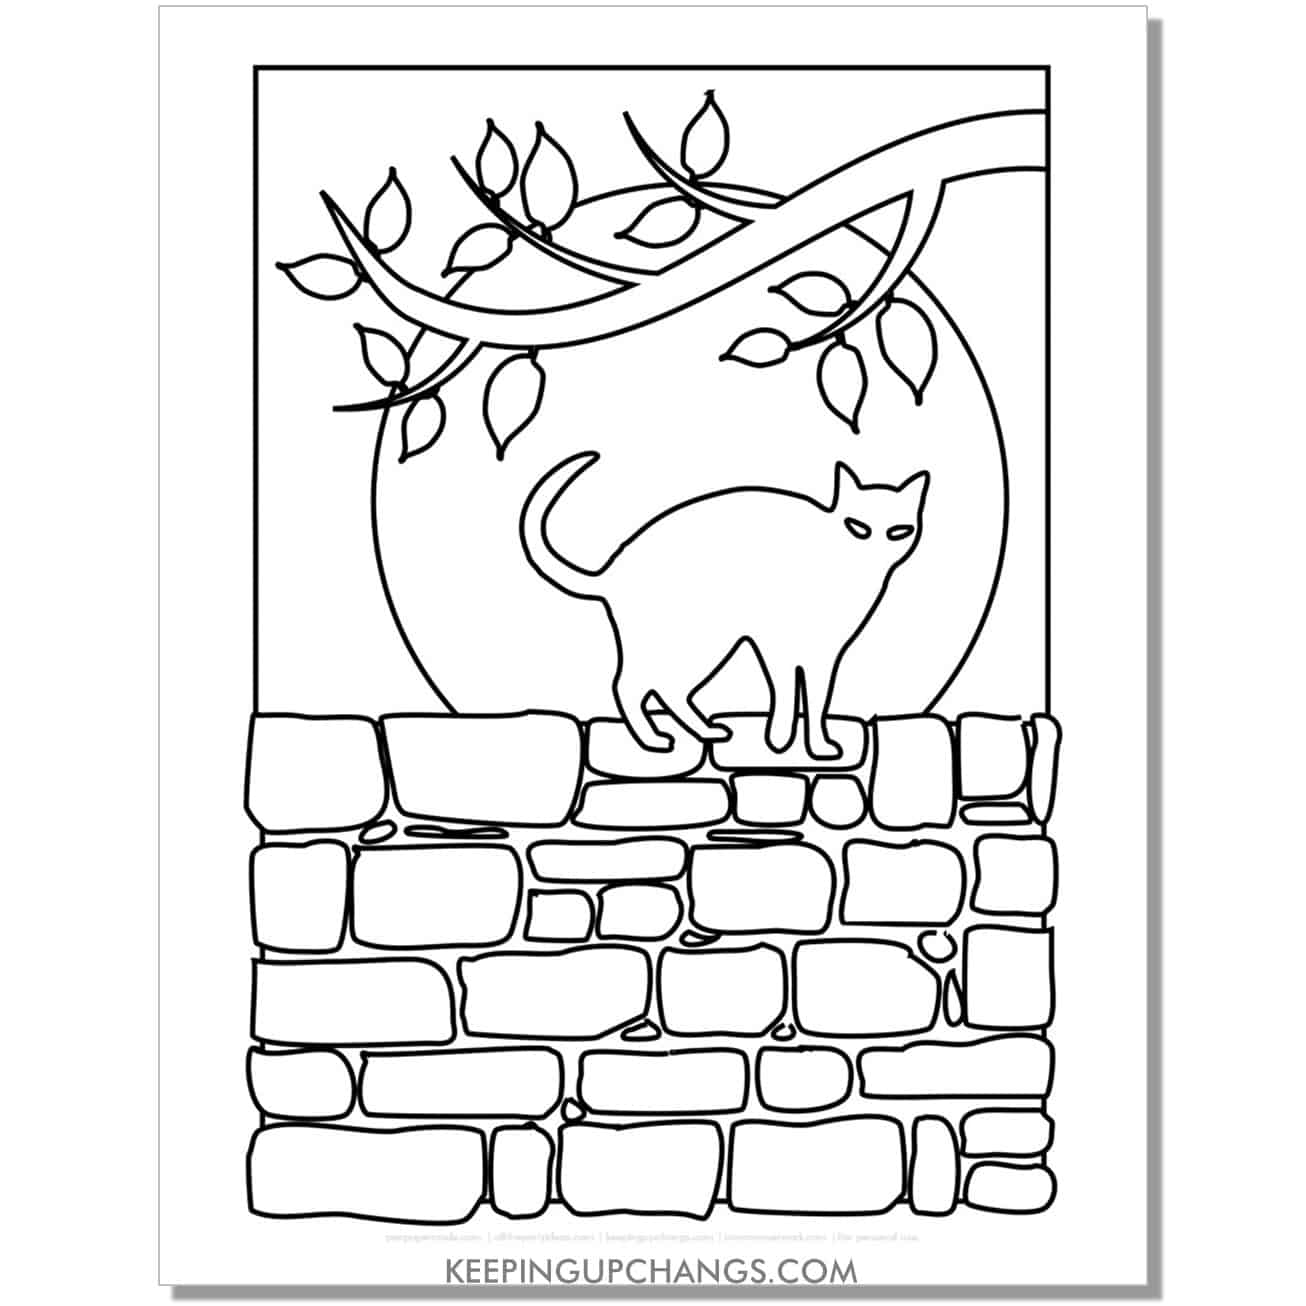 scary halloween cat on wall with full moon and bats coloring page.